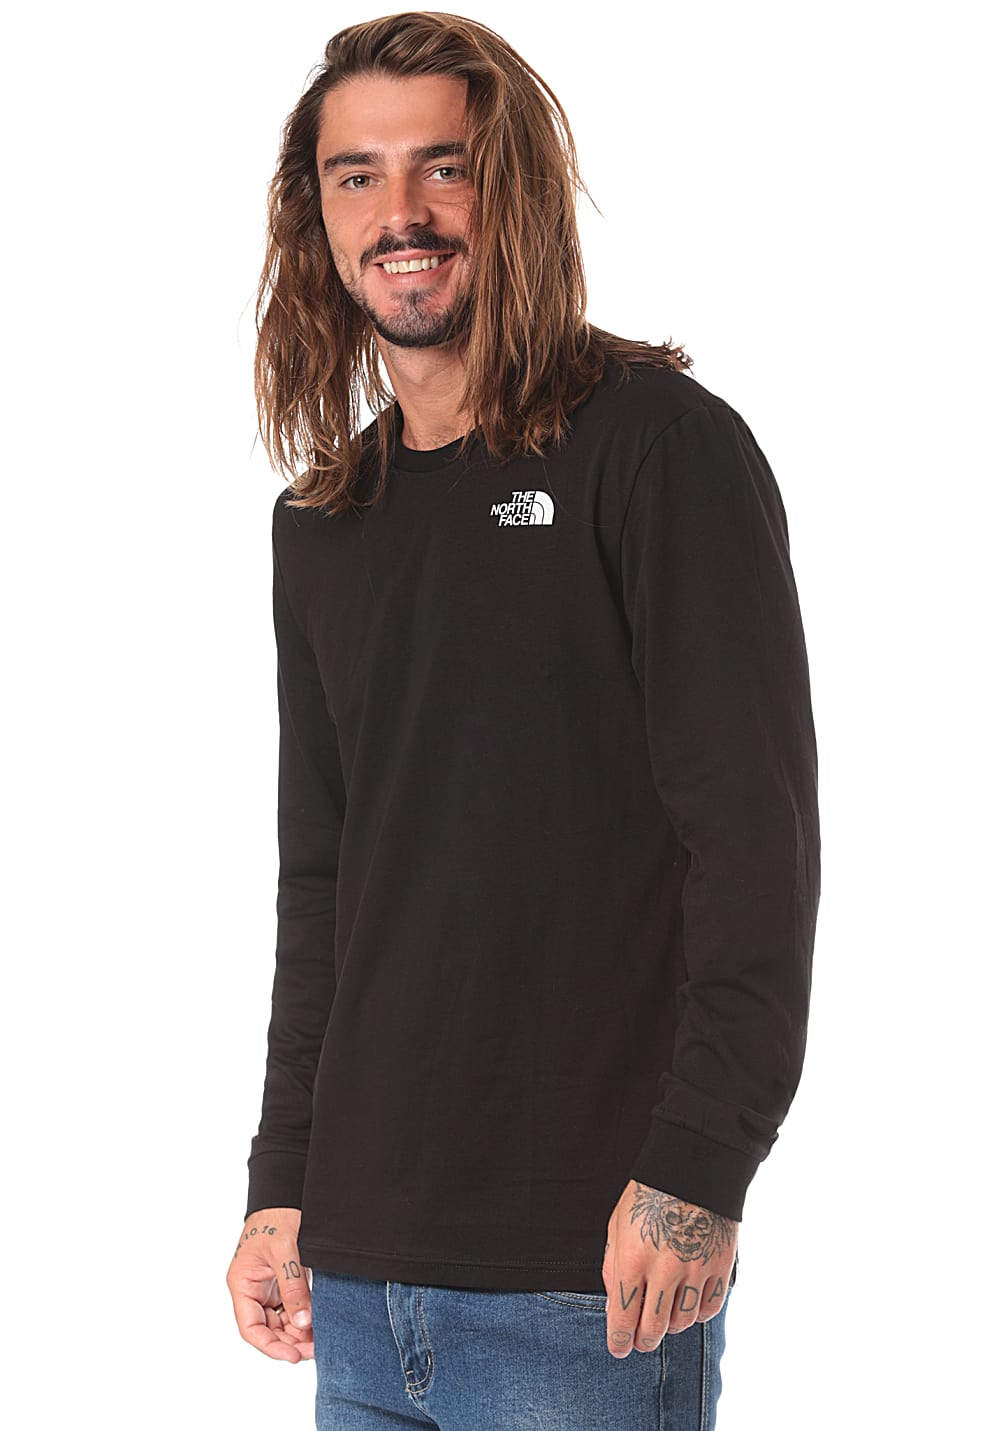 e1f80ee61 THE NORTH FACE Simple Dome - Long-sleeved Shirt for Men - Black